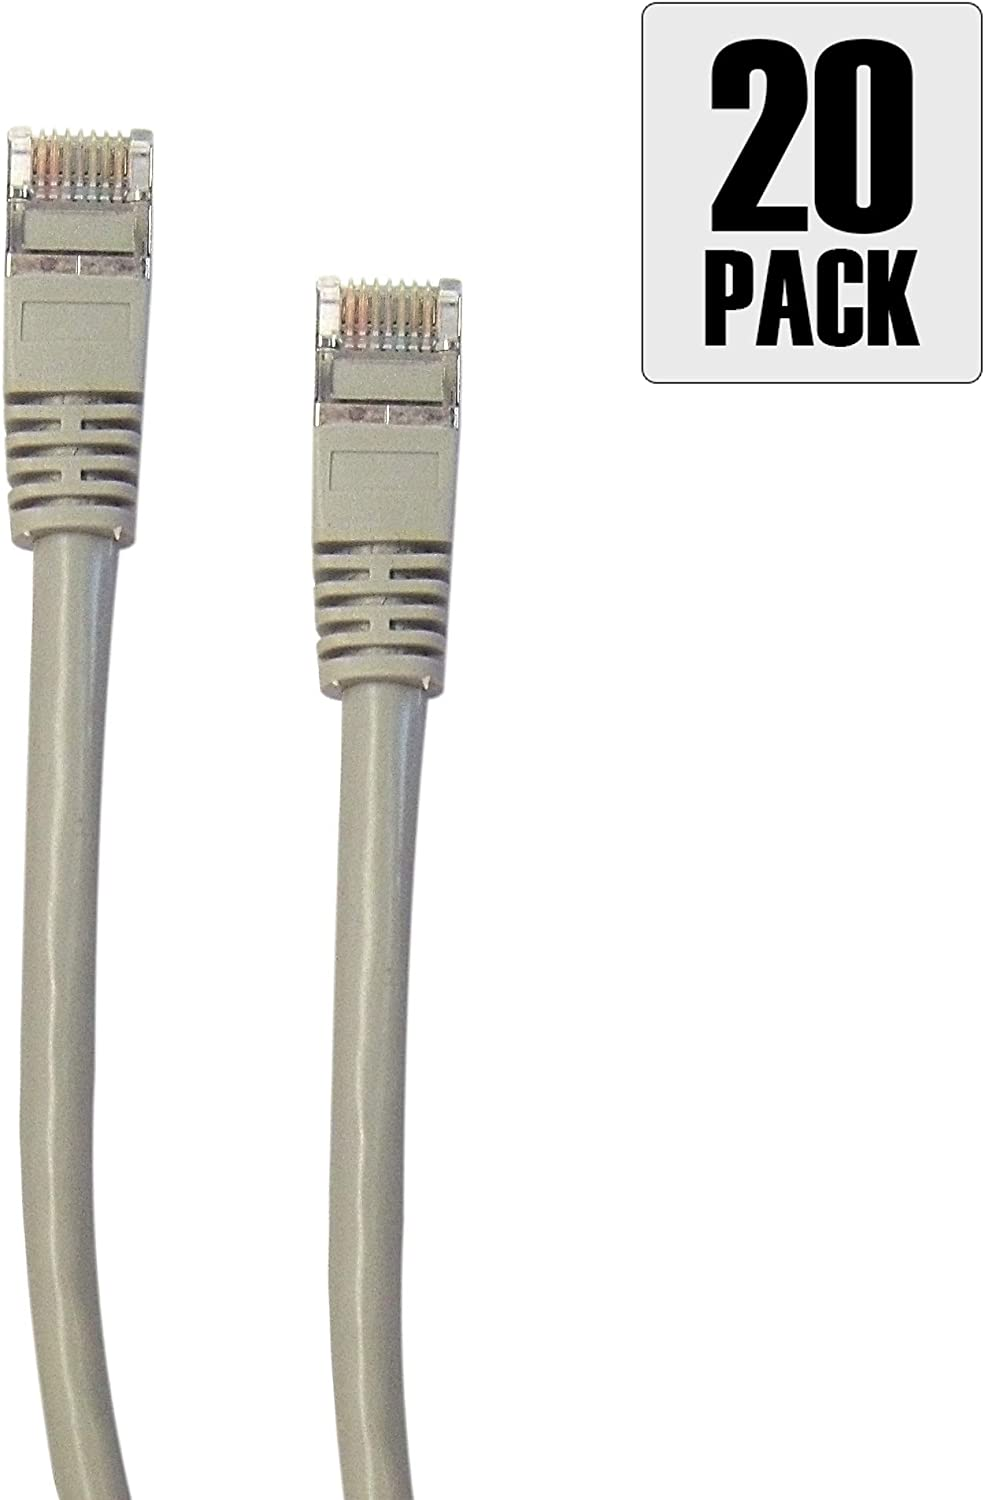 by Konnekta Cable 3 Foot Pack of 20 Snagless//Molded Boot Shielded Cat5e Gray Ethernet Cable